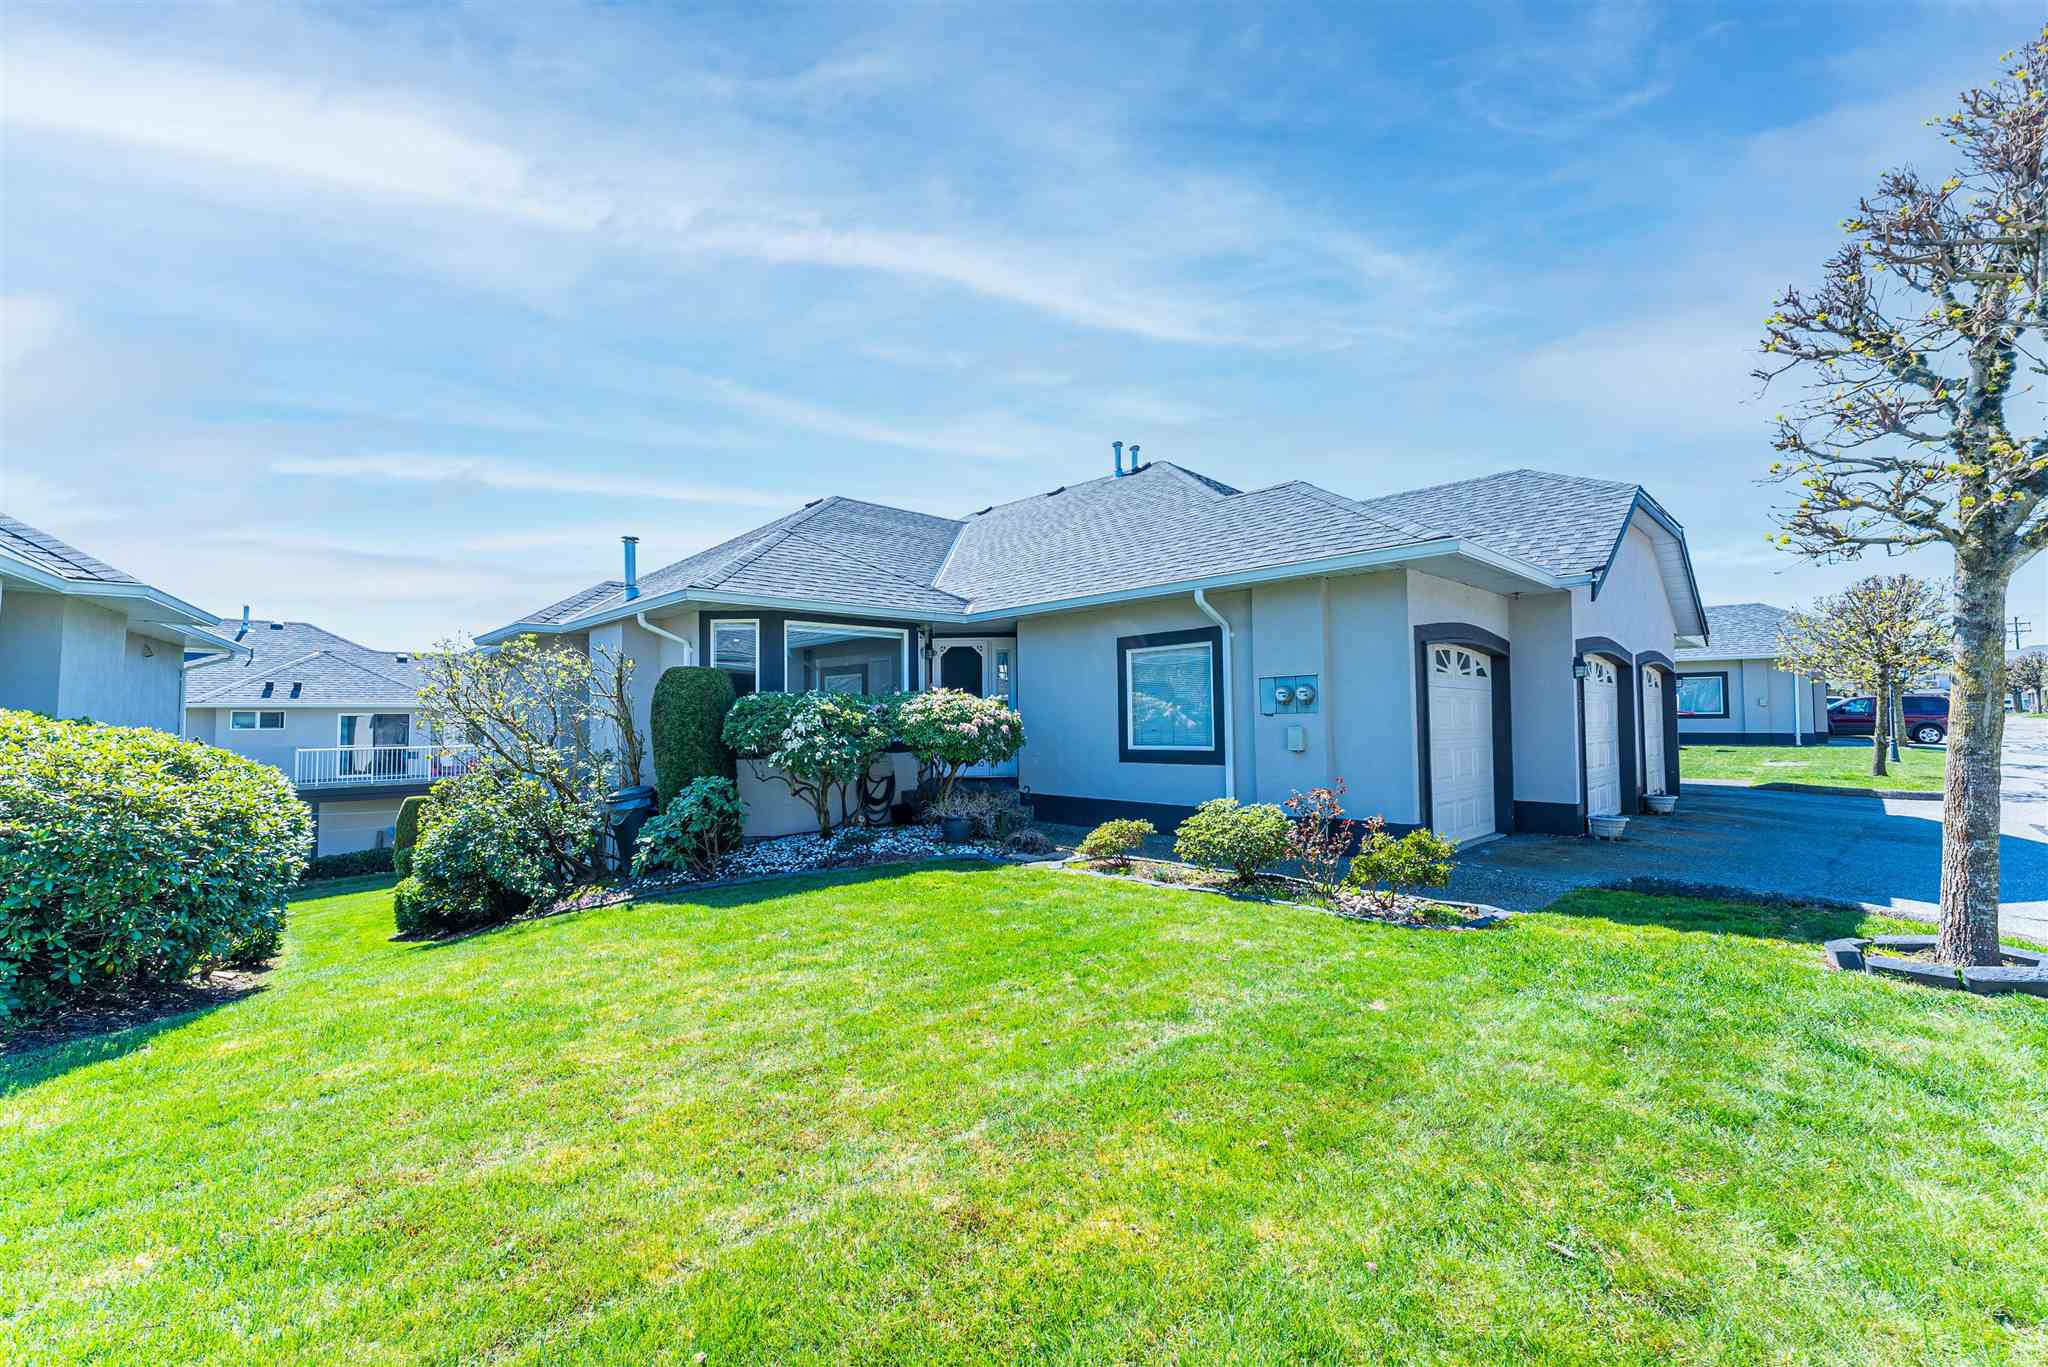 173 3160 TOWNLINE ROAD - Abbotsford West Townhouse for sale, 4 Bedrooms (R2604010) - #1